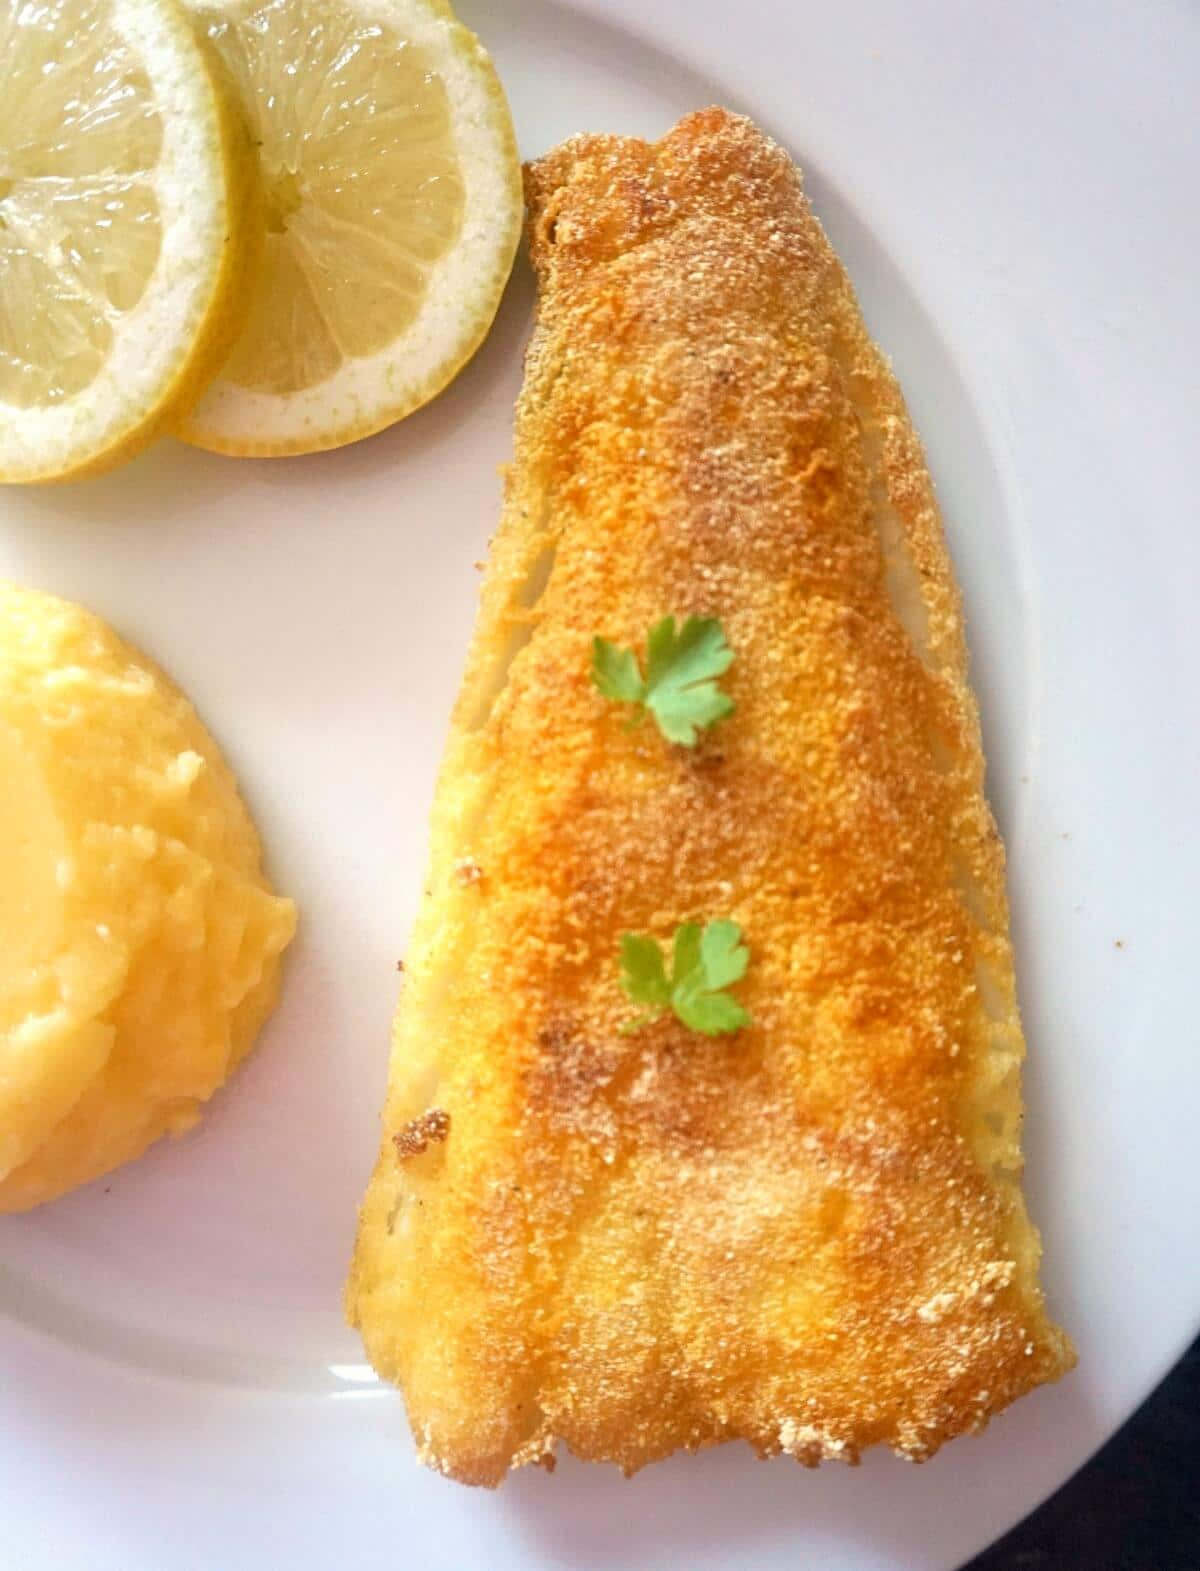 Overhead shoot of a fried fish fillet on a white plate with 2 slices of lemon and polenta